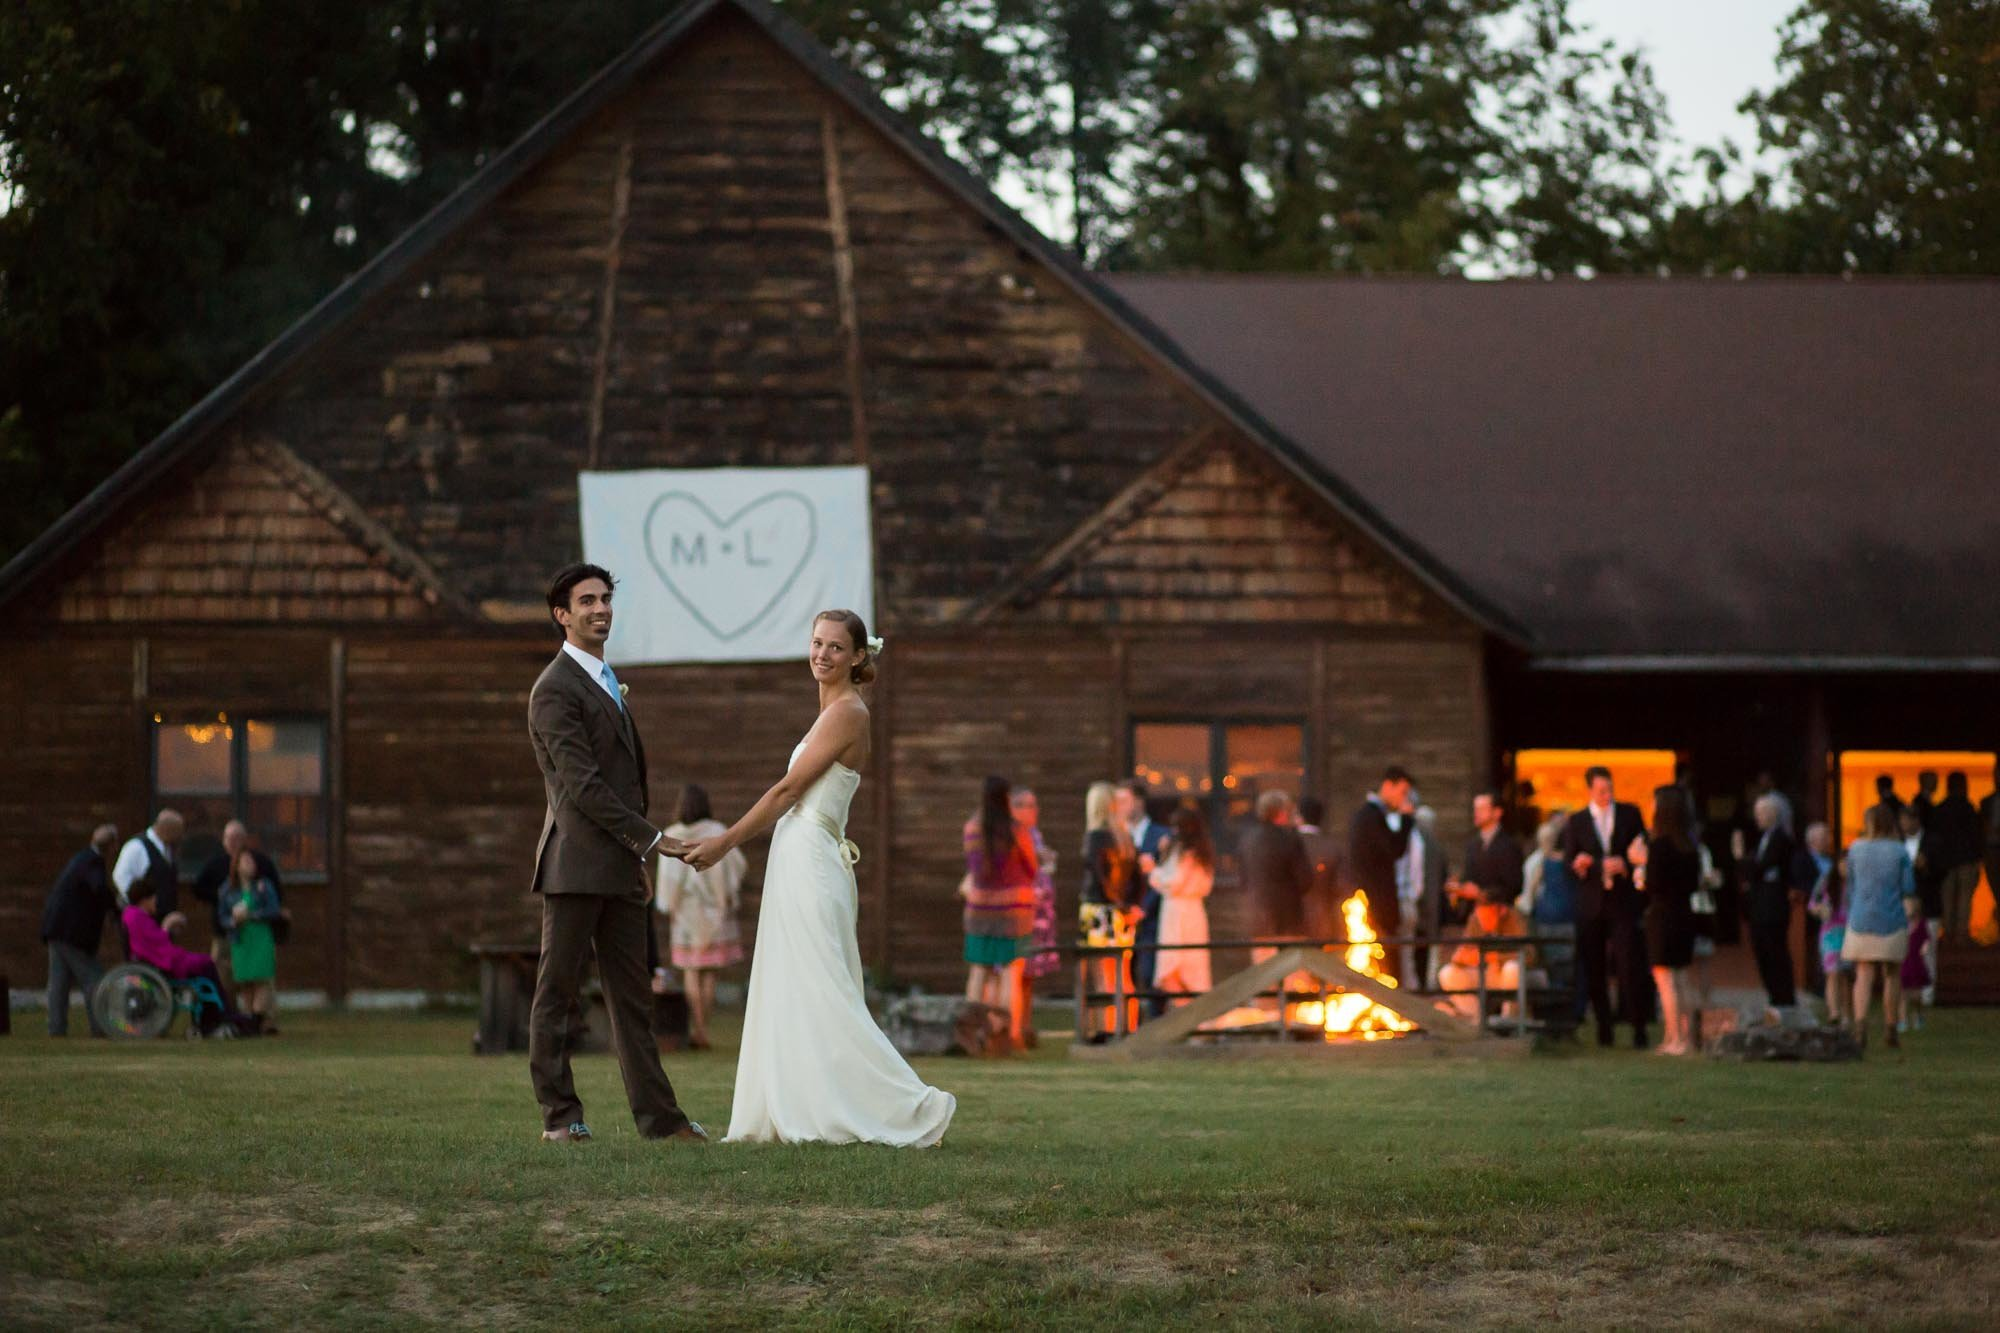 Camp-Rustic-lake-wedding-connecticut-photographer-43